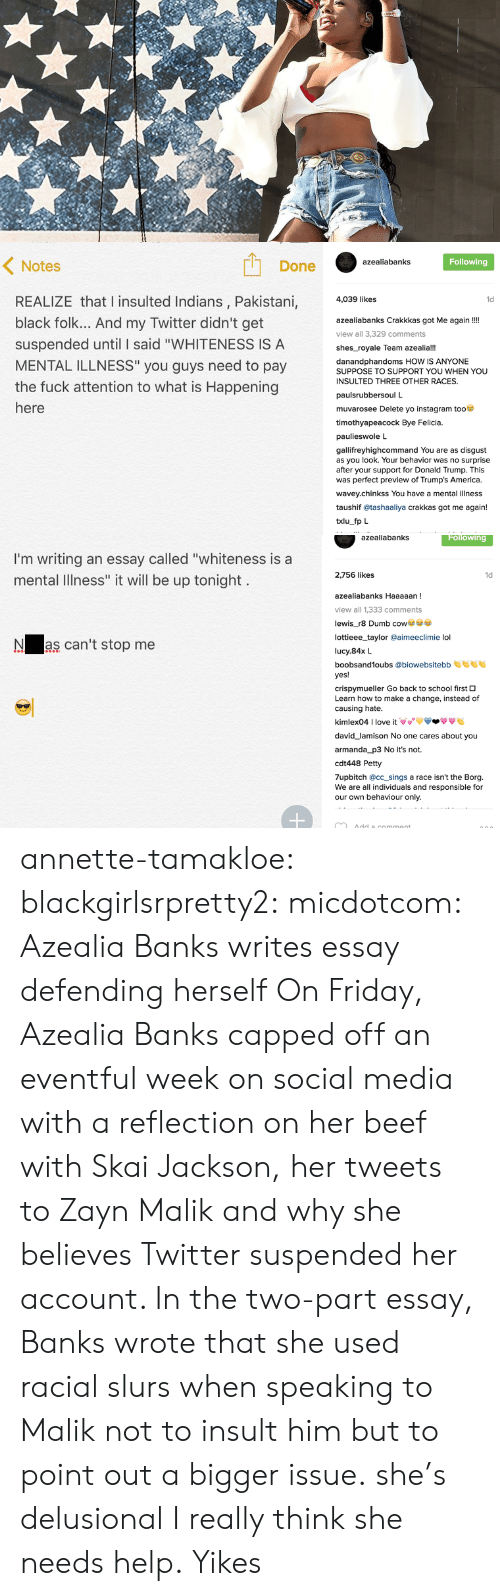 """bye felicia: Done  Following  azealiabanks  Notes  REALIZE that l insulted Indians, Pakistani,  black folk... And my Twitter didn't get  suspended until I said """"WHITENESS IS A  MENTAL ILLNESS"""" you guys need to pay  the fuck attention to what is Happening  4,039 likes  1d  azealiabanks Crakkkas got Me again!!  view all 3,329 comments  shes_royale Team azealia!!!  danandphandoms HOW IS ANYONE  SUPPOSE TO SUPPORT YOU WHEN YOU  INSULTED THREE OTHER RACES.  paulsrubbersoul L  muvarosee Delete yo instagram too  timothyapeacock Bye Felicia.  paulieswole L  gallifreyhighcommand You are as disgust  as you look. Your behavior was no surprise  after your support for Donald Trump. This  was perfect preview of Trump's America.  wavey.chinkss You have a mental illness  taushif @tashaaliya crakkas got me again!  txlu fp L   azealiabanks  Following  I'm writing an essay called """"whiteness is a  mental Illness"""" it will be up tonight  2,756 likes  1d  azealiabanks Haaaaan  view all 1,333 comments  lewis_r8 Dumb co  lottieee_taylor @aimeeclimie lol  lucy.84x L  boobsand1oubs @biowebsitebb  yes!  crispymueller Go back to school first O  Learn how to make a change, instead of  causing hate  kimlex04 I love it VVVV-ффе  Nas can't stop me  david_lamison No one cares about you  armanda_p3 No it's not.  cdt448 Petty  7upbitch @cc_sings a race isn't the Borg.  We are all individuals and responsible for  our own behaviour only. annette-tamakloe:  blackgirlsrpretty2:  micdotcom:  Azealia Banks writes essay defending herself On Friday, Azealia Banks capped off an eventful week on social media with a reflection on her beef with Skai Jackson, her tweets to Zayn Malik and why she believes Twitter suspended her account. In the two-part essay, Banks wrote that she used racial slurs when speaking to Malik not to insult him but to point out a bigger issue.   she's delusional  I really think she needs help.  Yikes"""